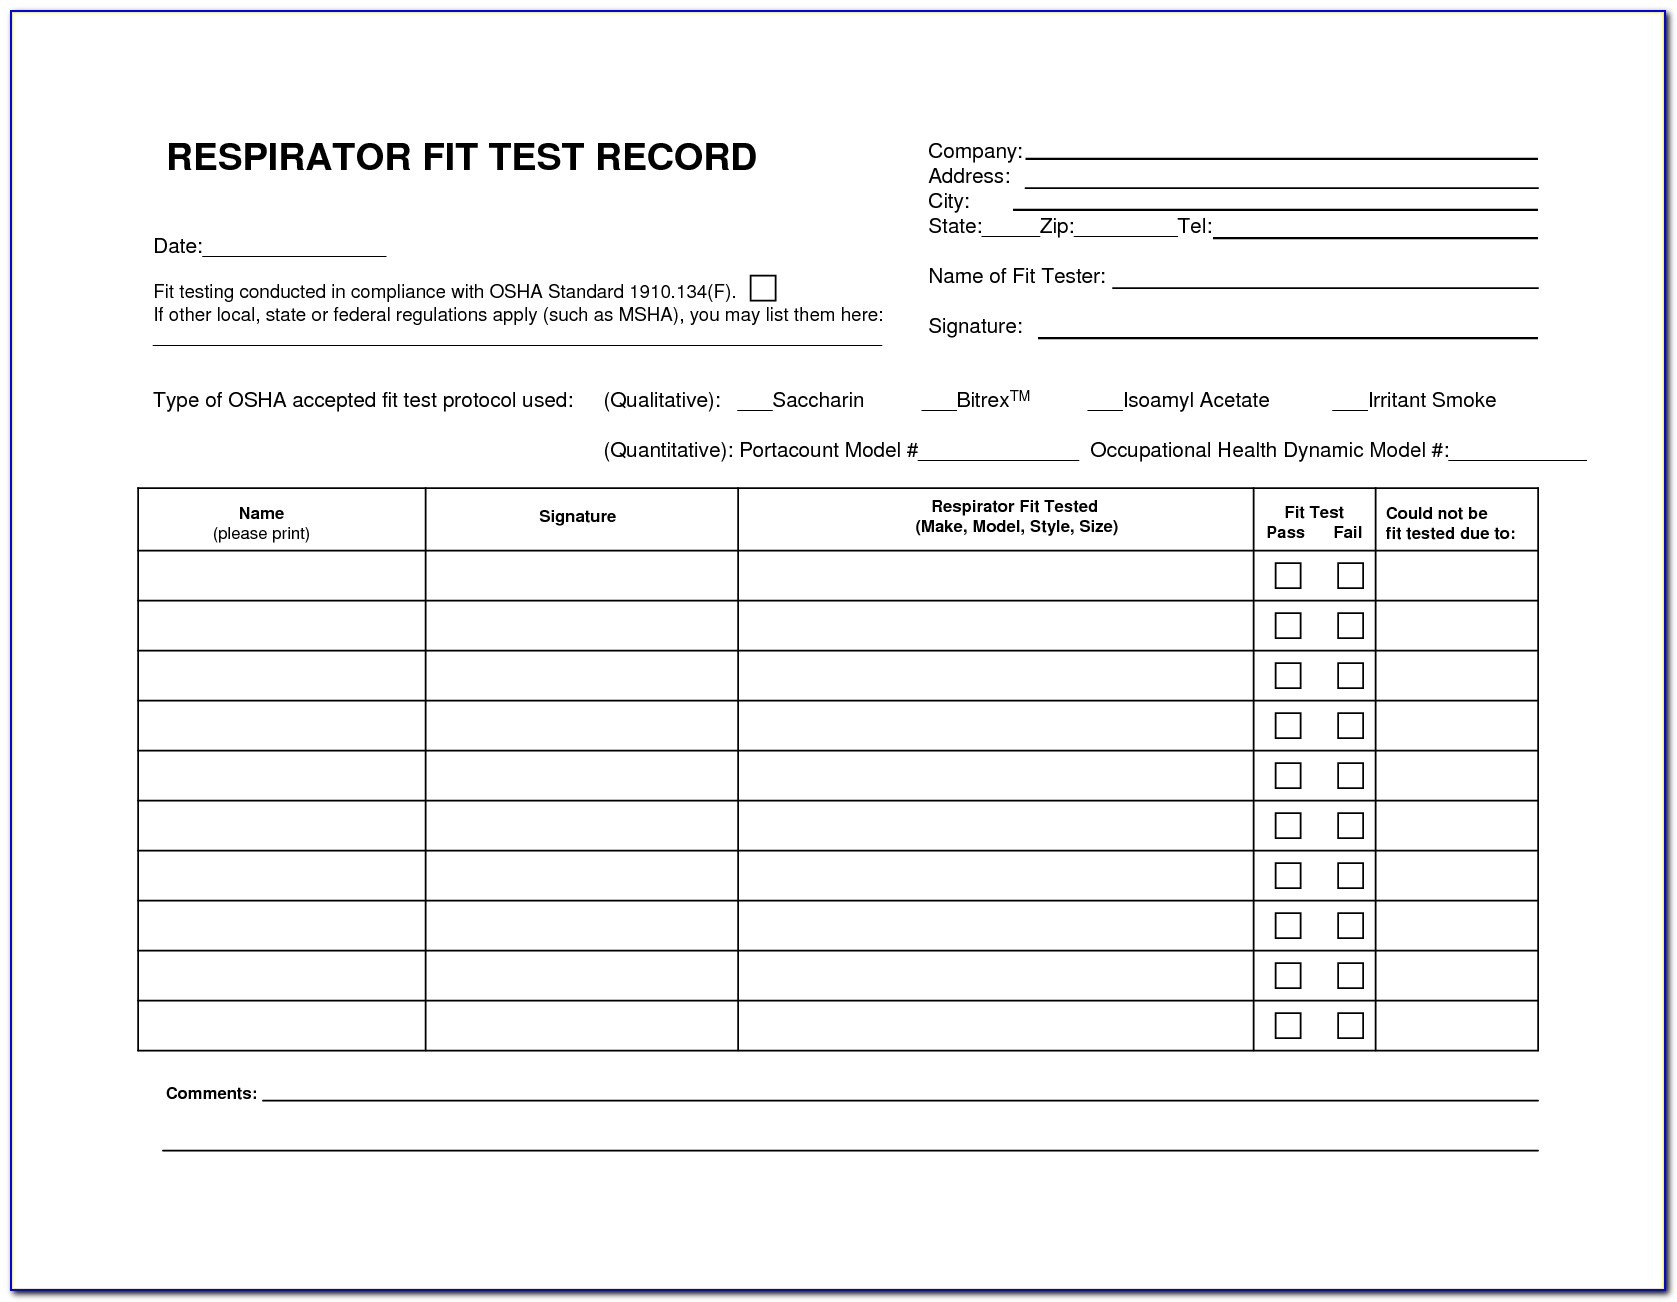 Respirator Fit Testing Certification Near Me